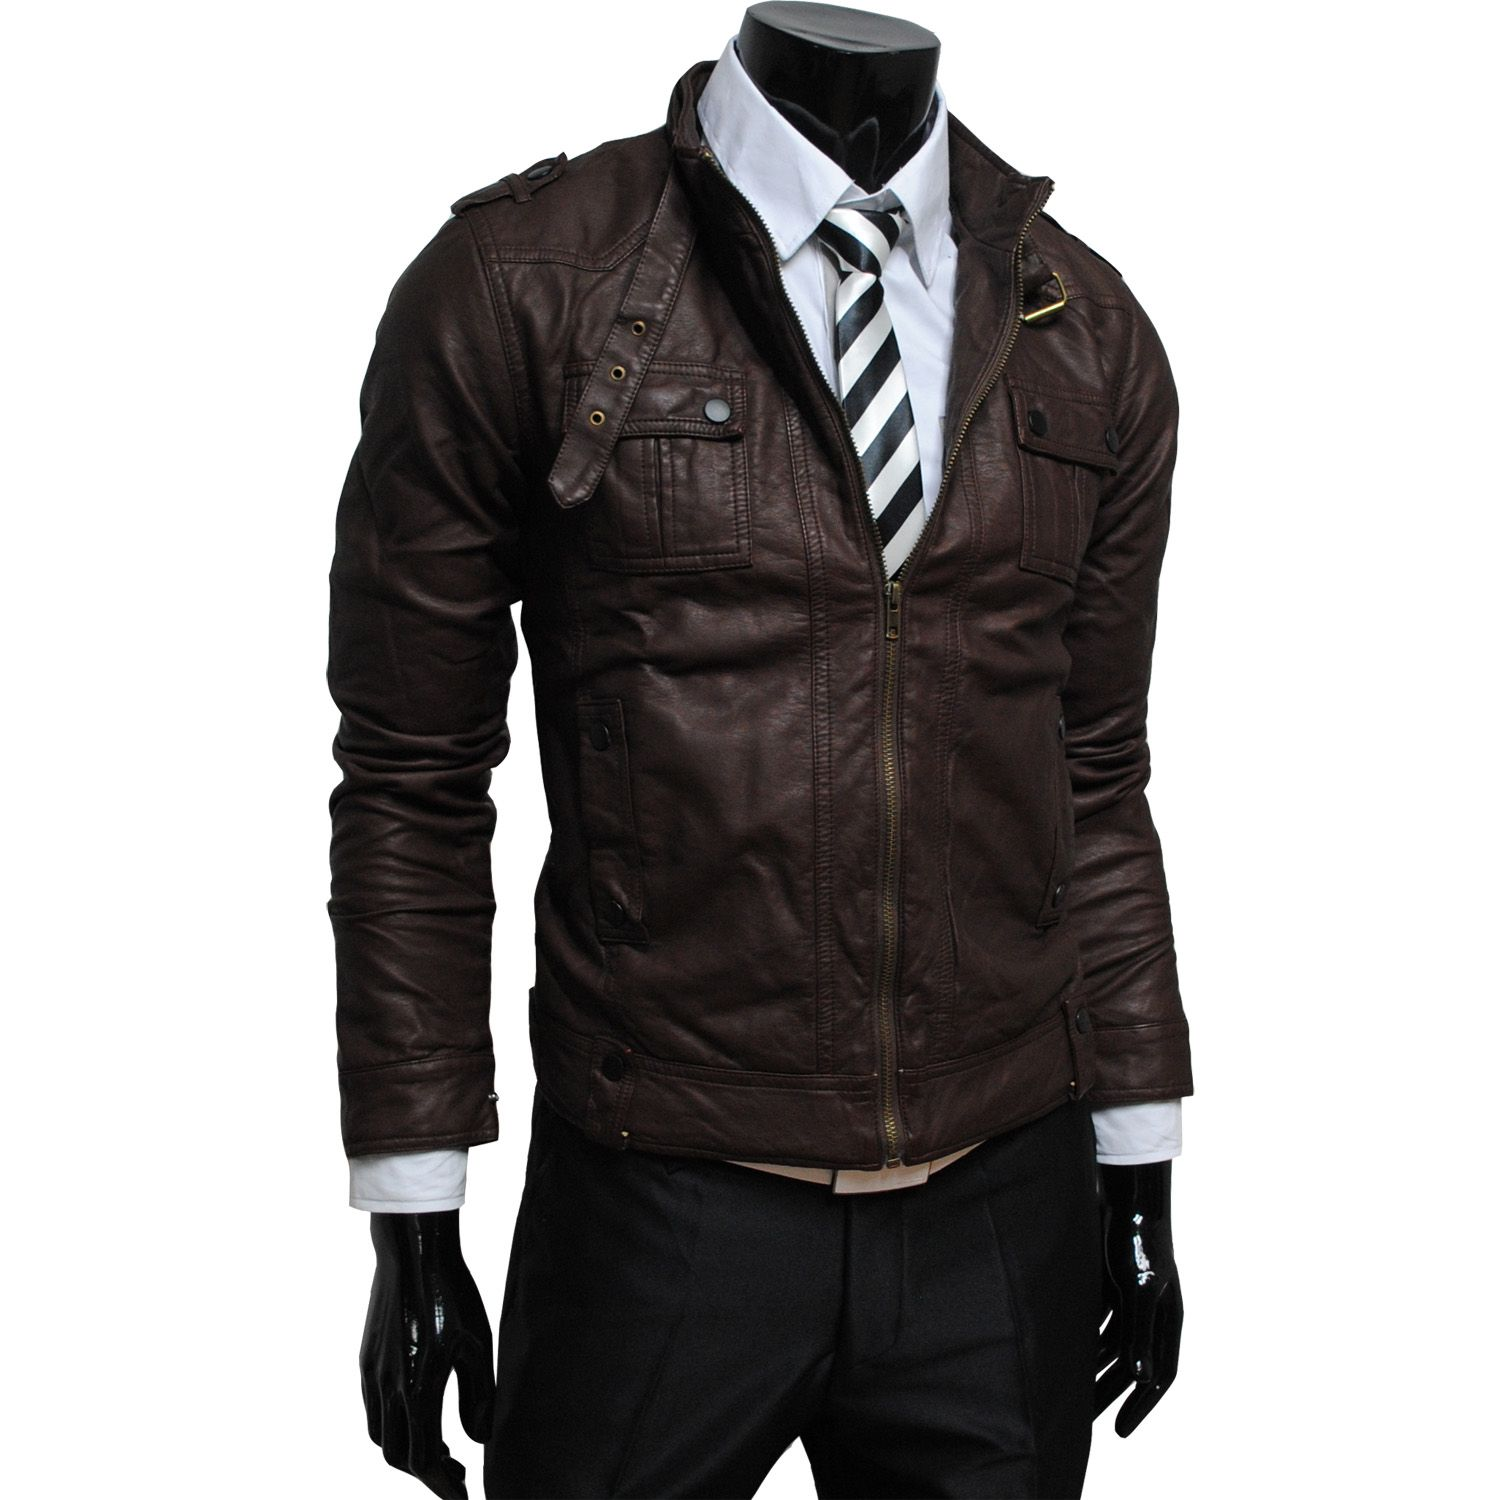 Thumbnail 1 Jackets, Leather jacket, Brown faux leather